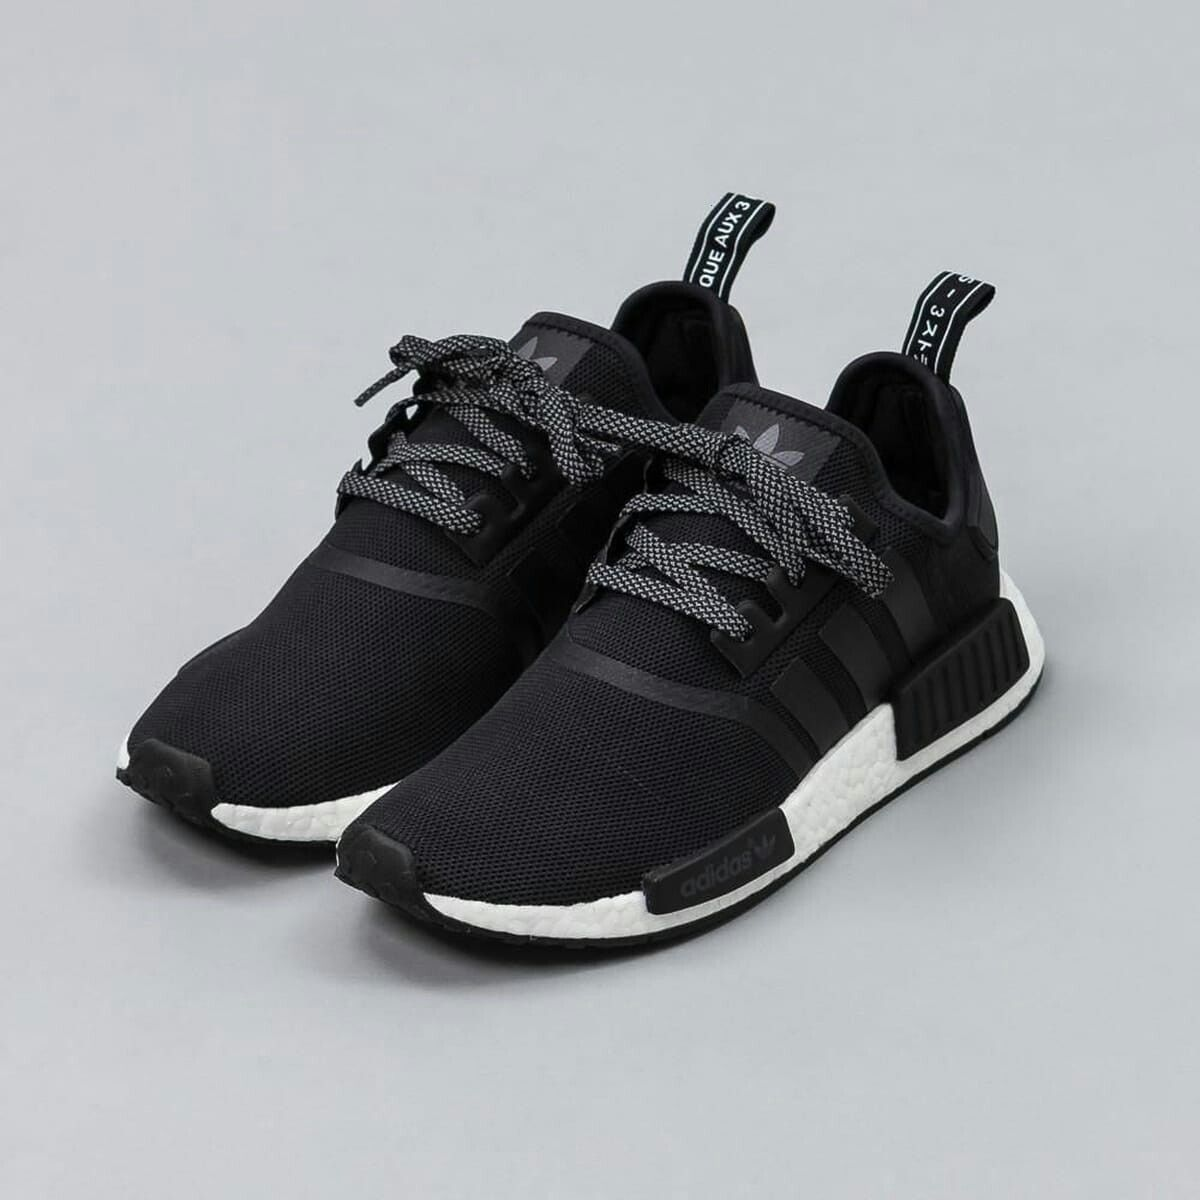 4987742e5 2016 Hot Sale adidas Sneaker Release And Sales  provide high quality Cheap  adidas shoes for men adidas shoes for women  Up TO Off Clothing  Shoes  Jewelry ...